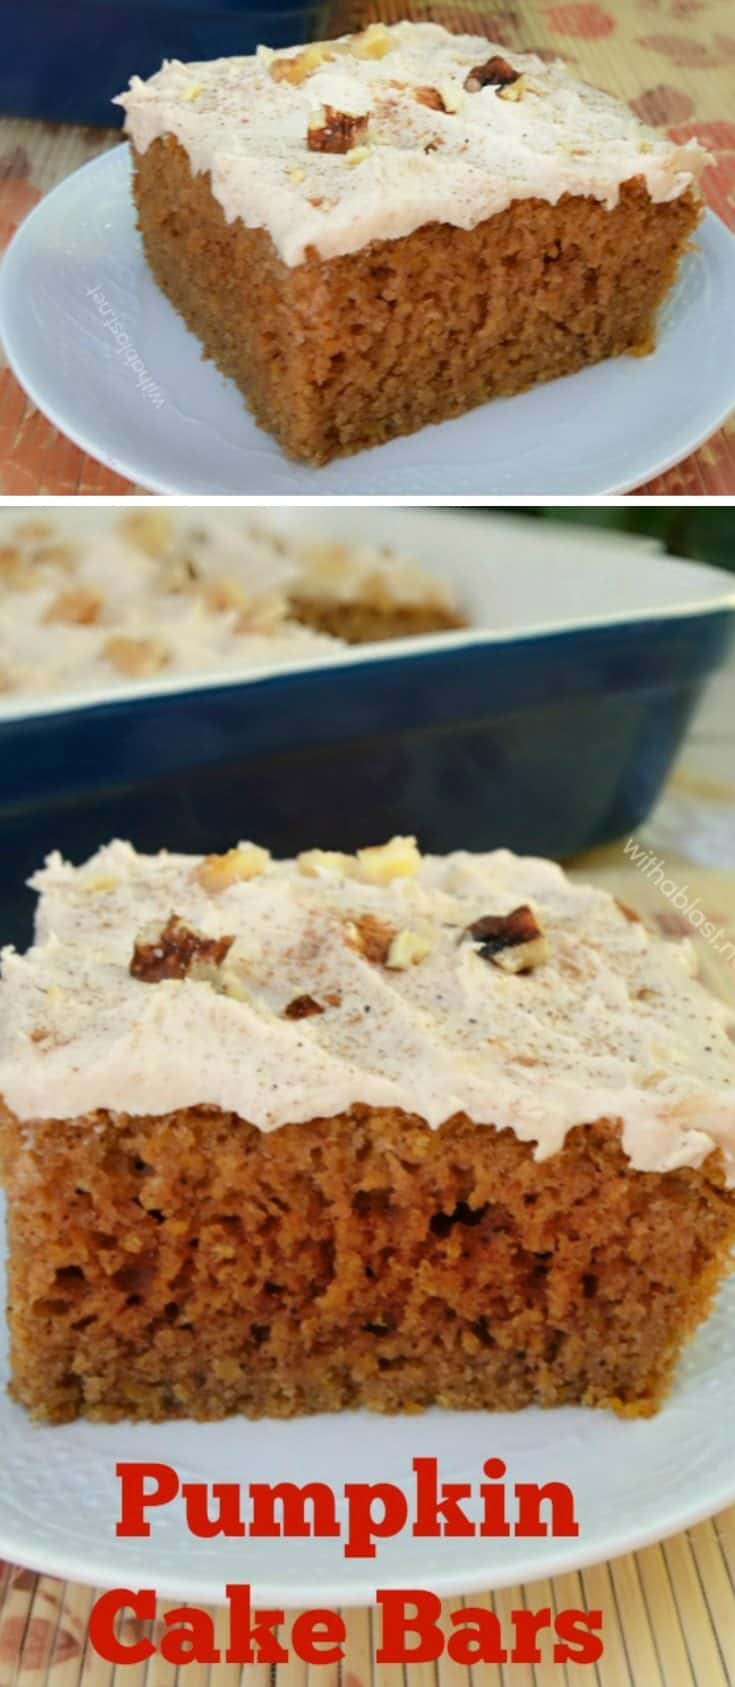 Pumpkin Cake Bars are moist, soft and delicious to serve especially as a Fall dessert, tea time treats or anytime snacking #PumpkinCake #CakeRecipe #EasyPumpkinCake #FallDessert